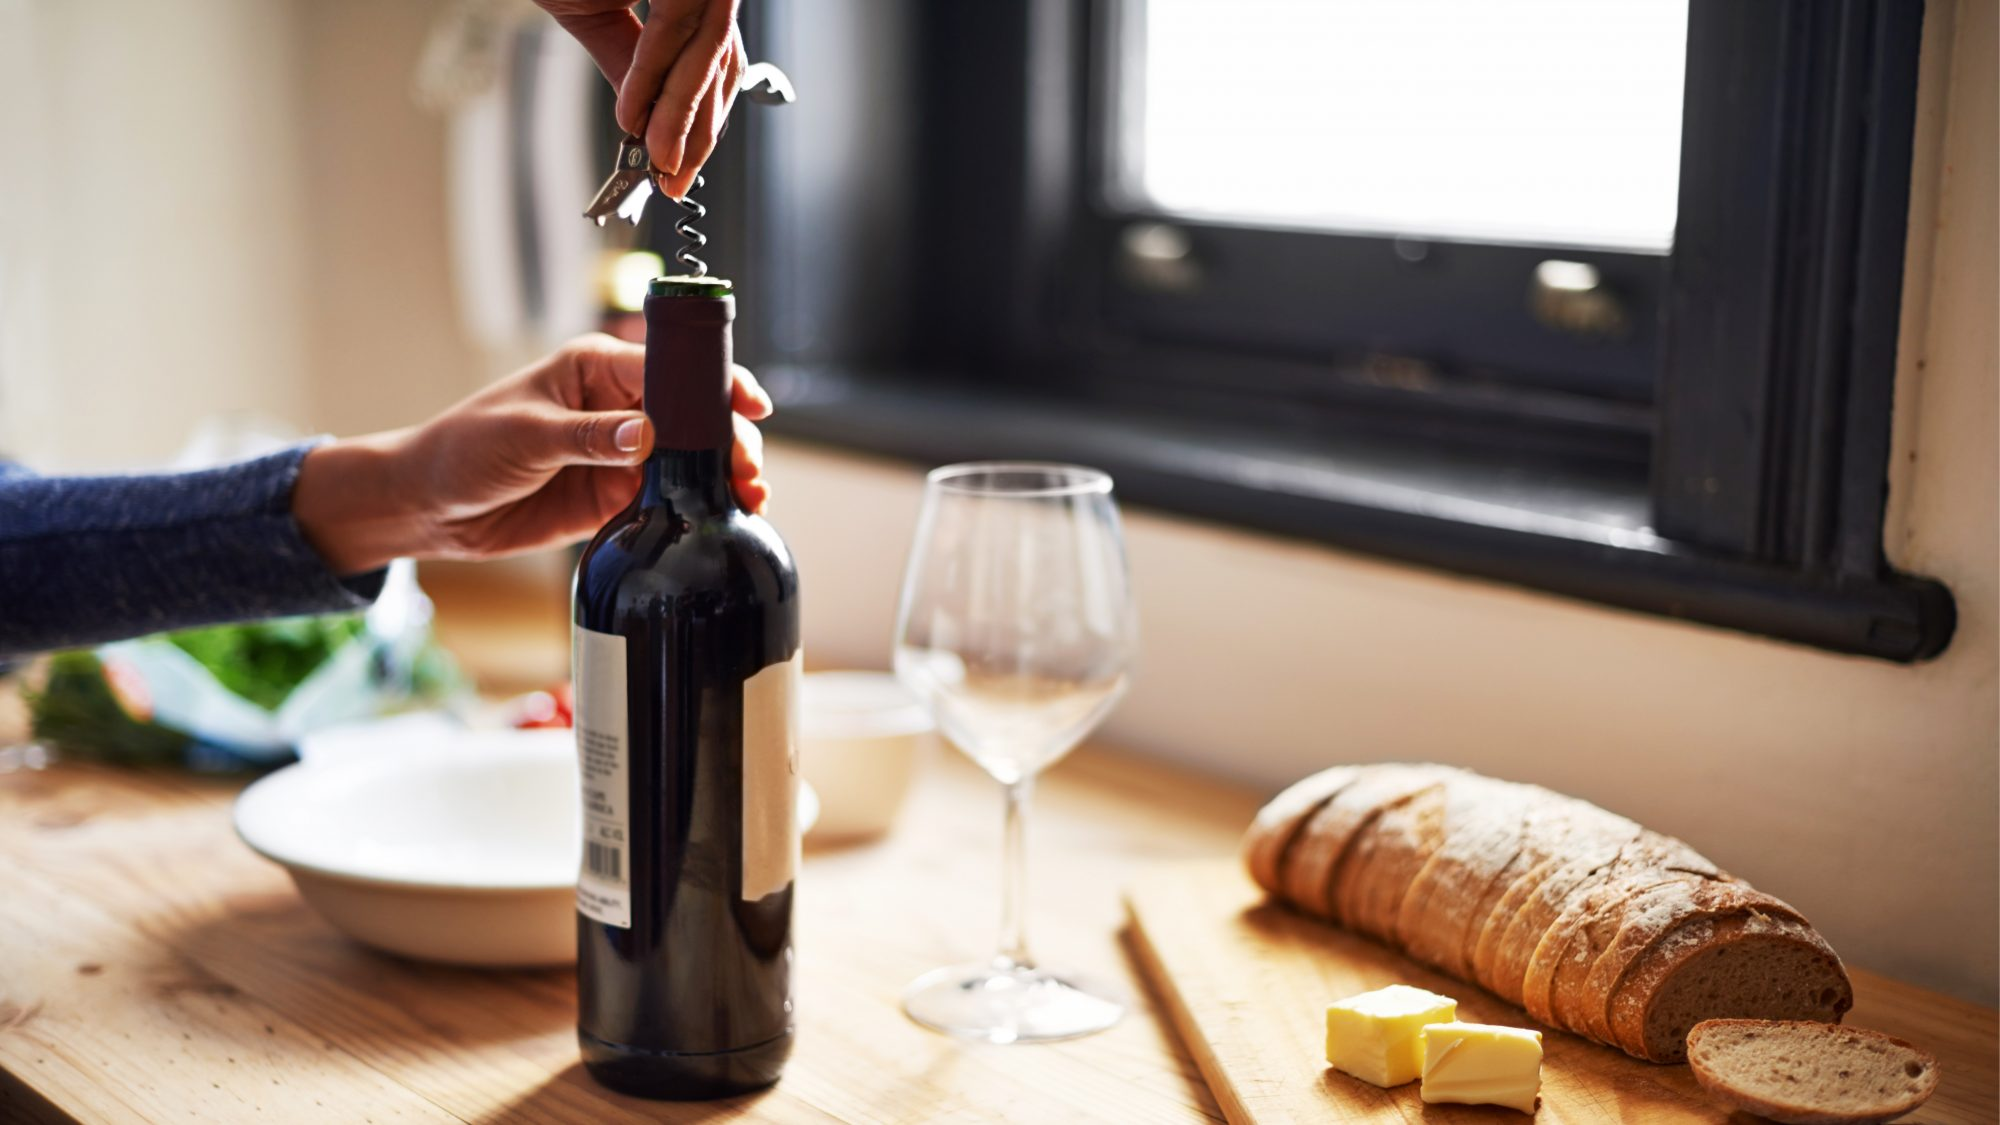 how-to-store-leftover-wine: woman opening bottle of wine